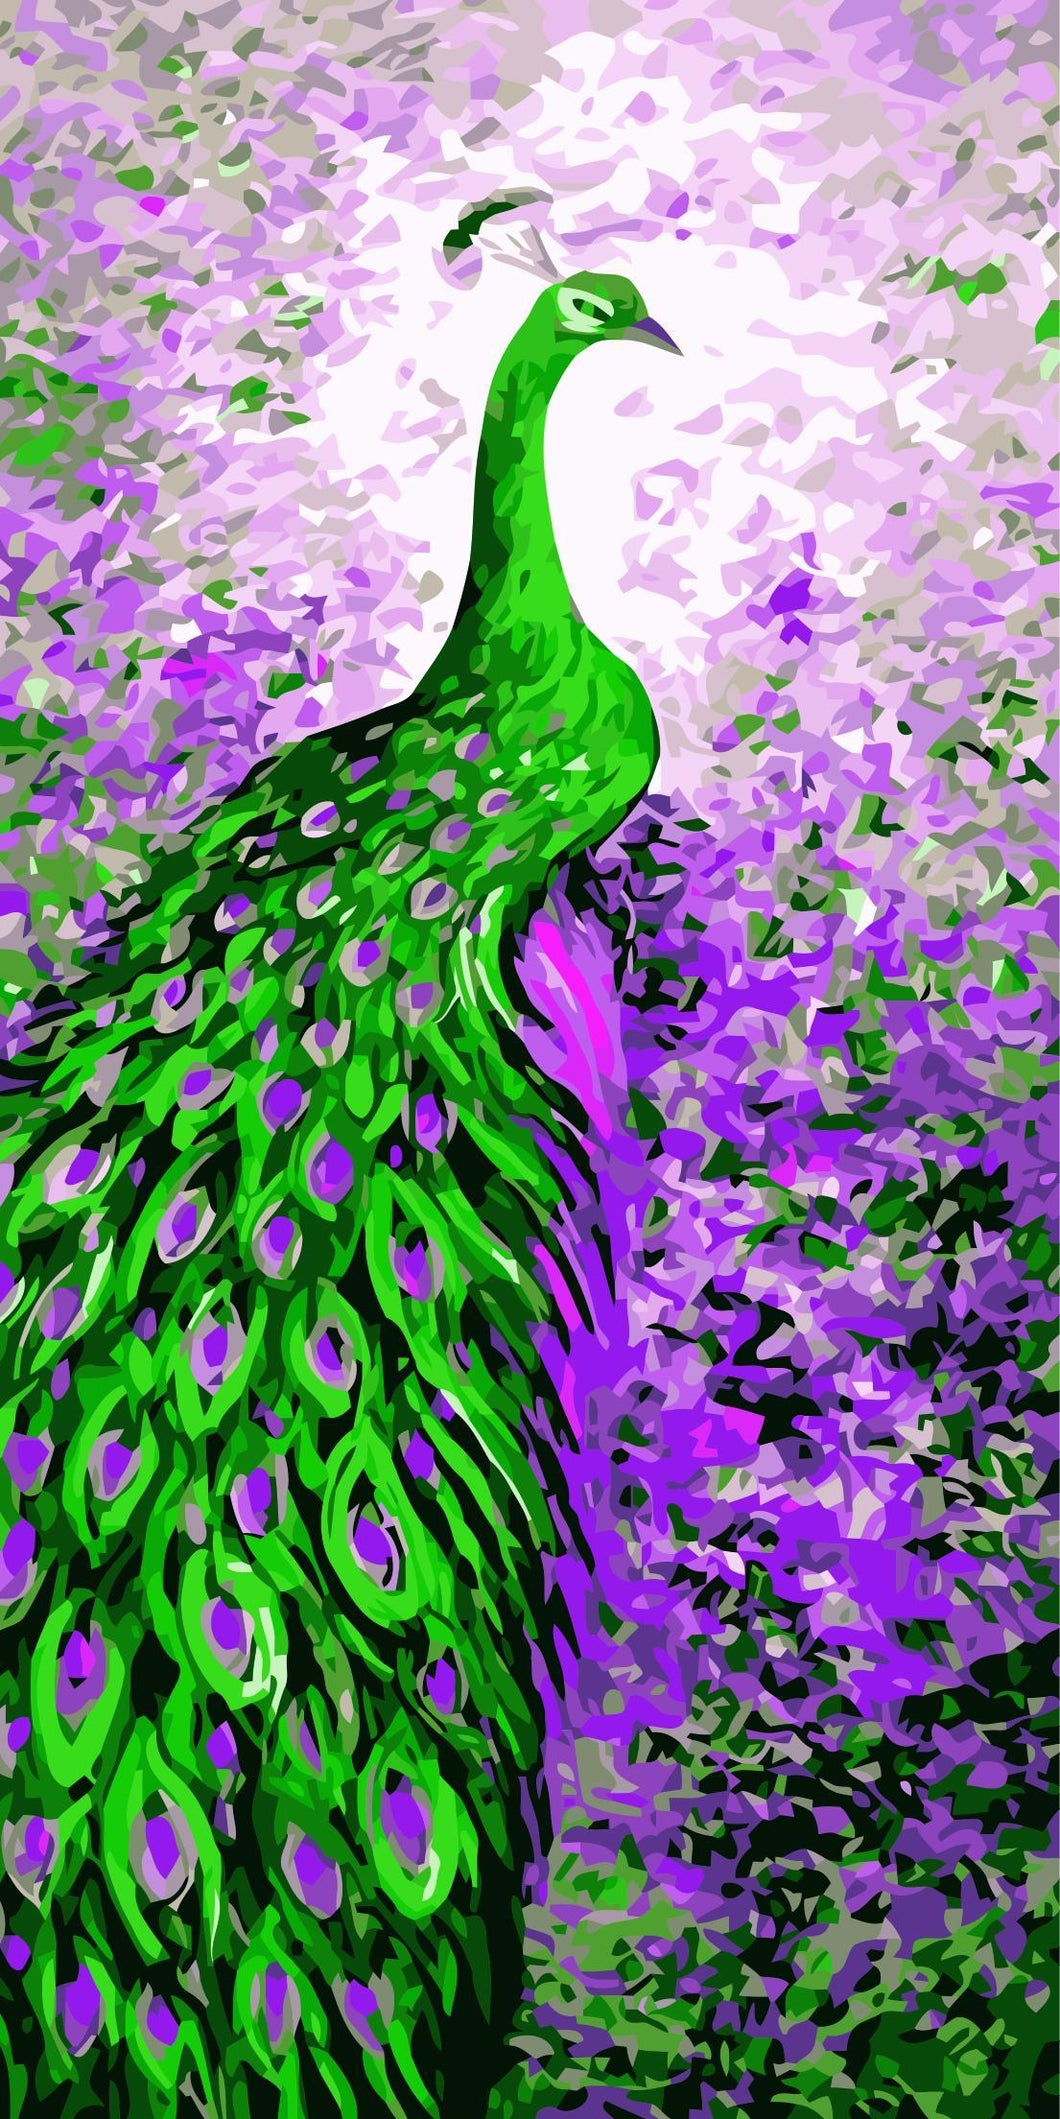 the peacock painting